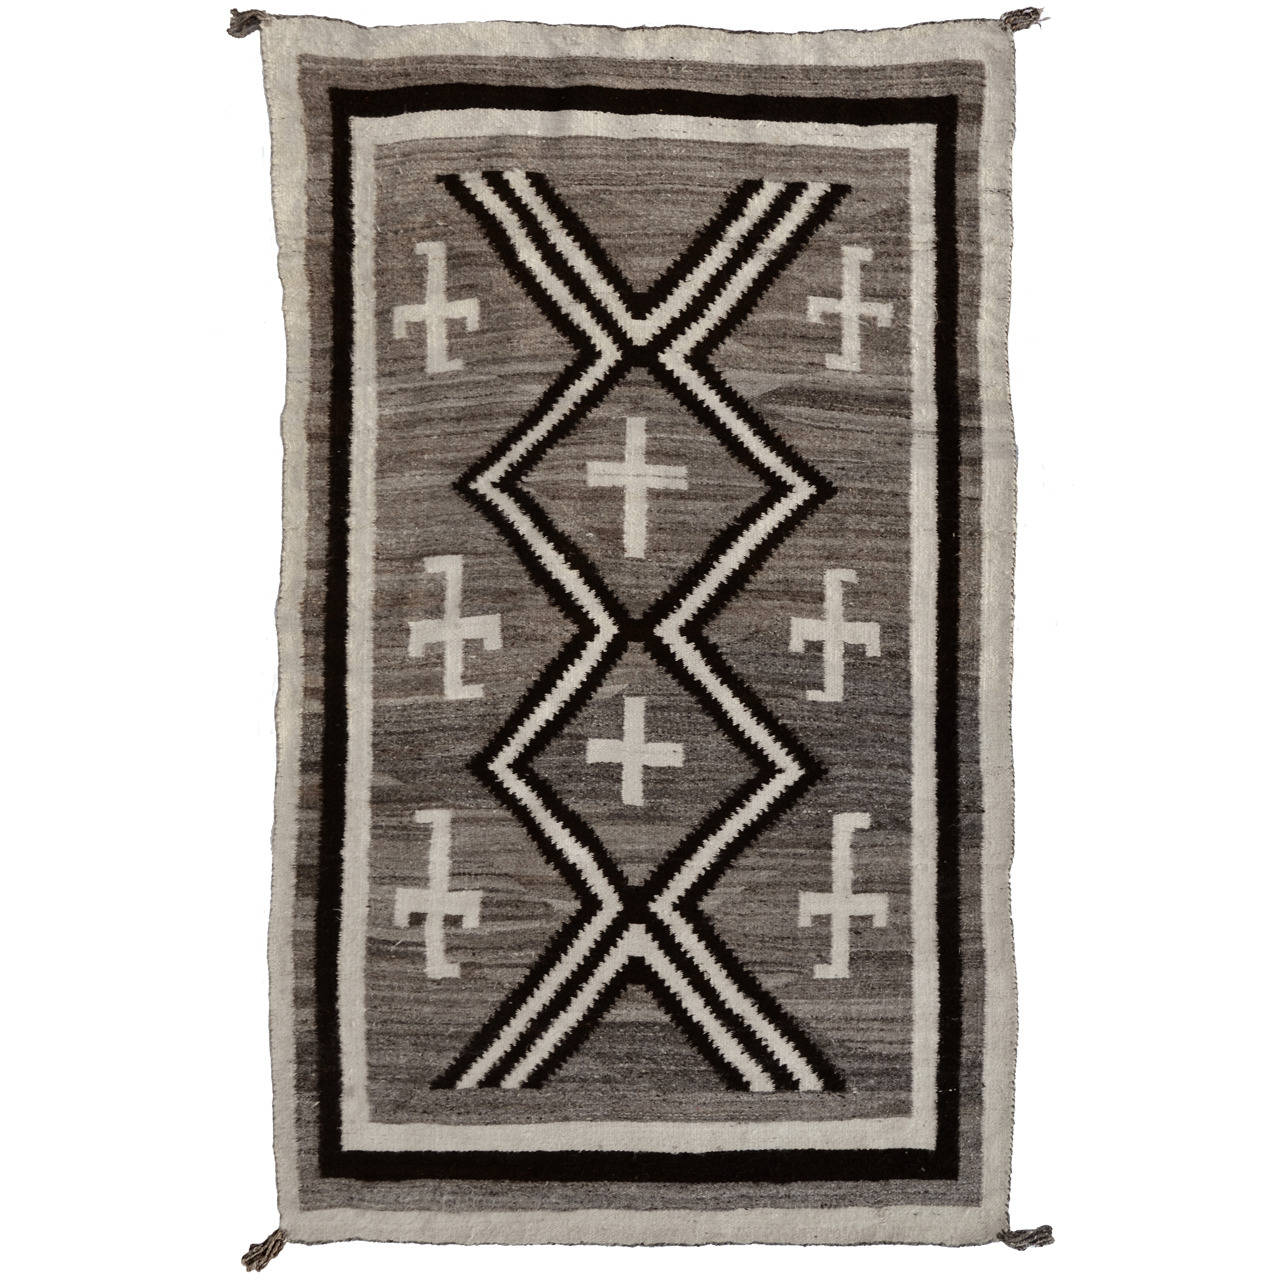 Navajo Rug With Spider Woman Cross And Whirling Logs 1900